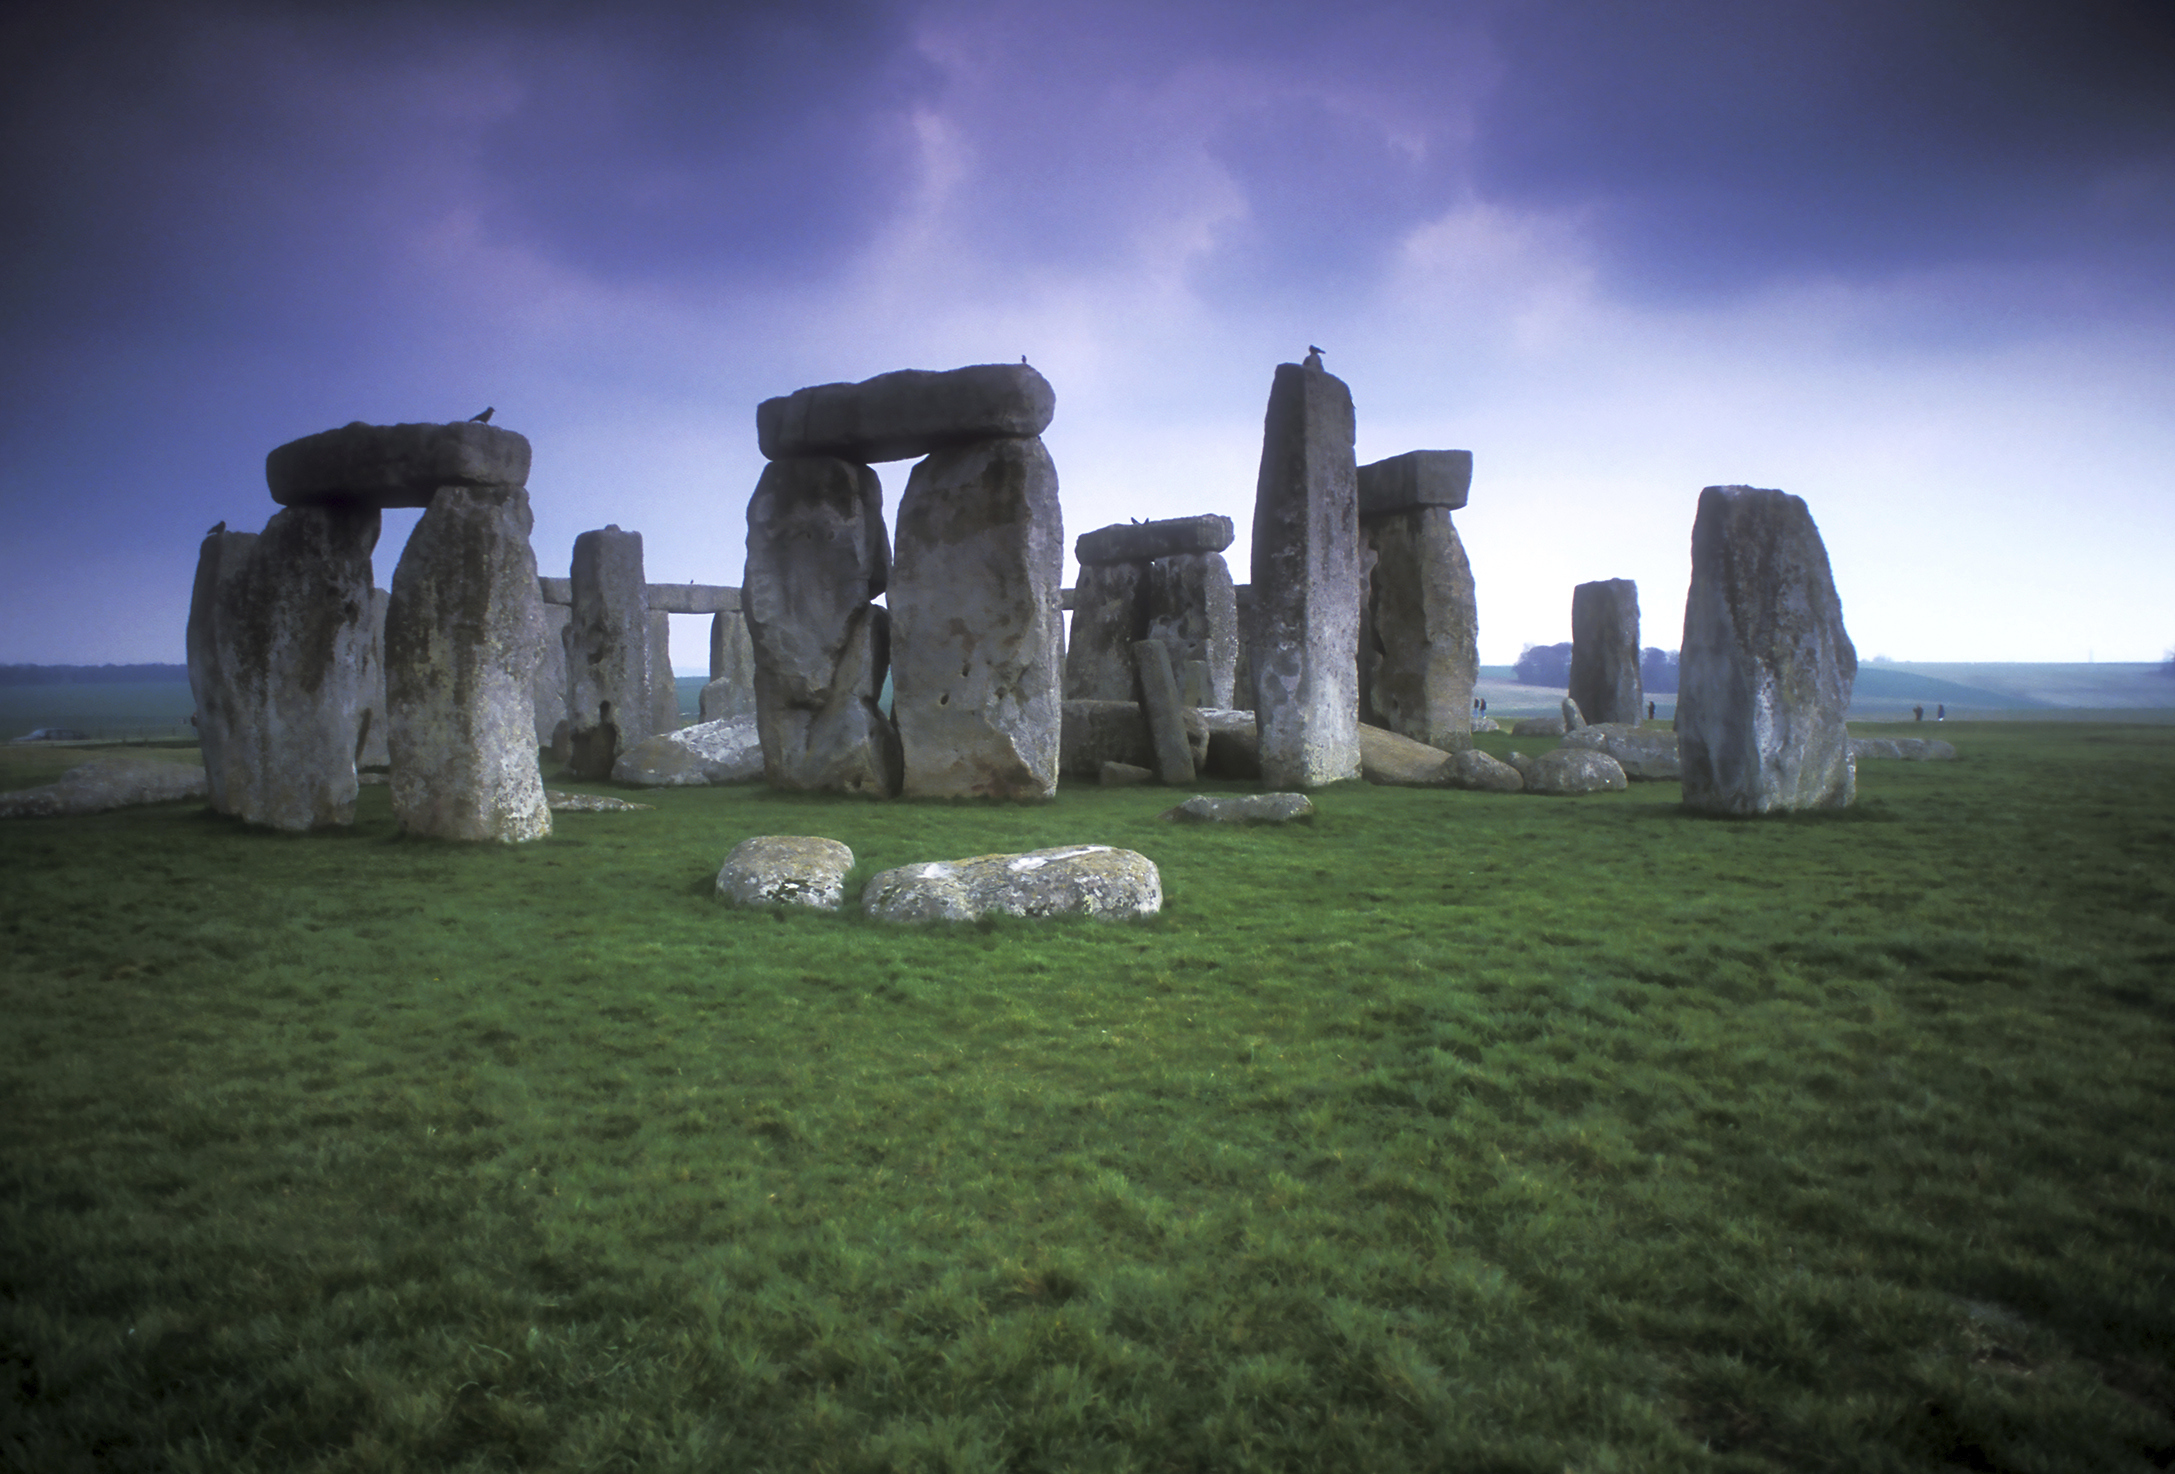 Stonehenge, Amesbury, United Kingdom (7832313)